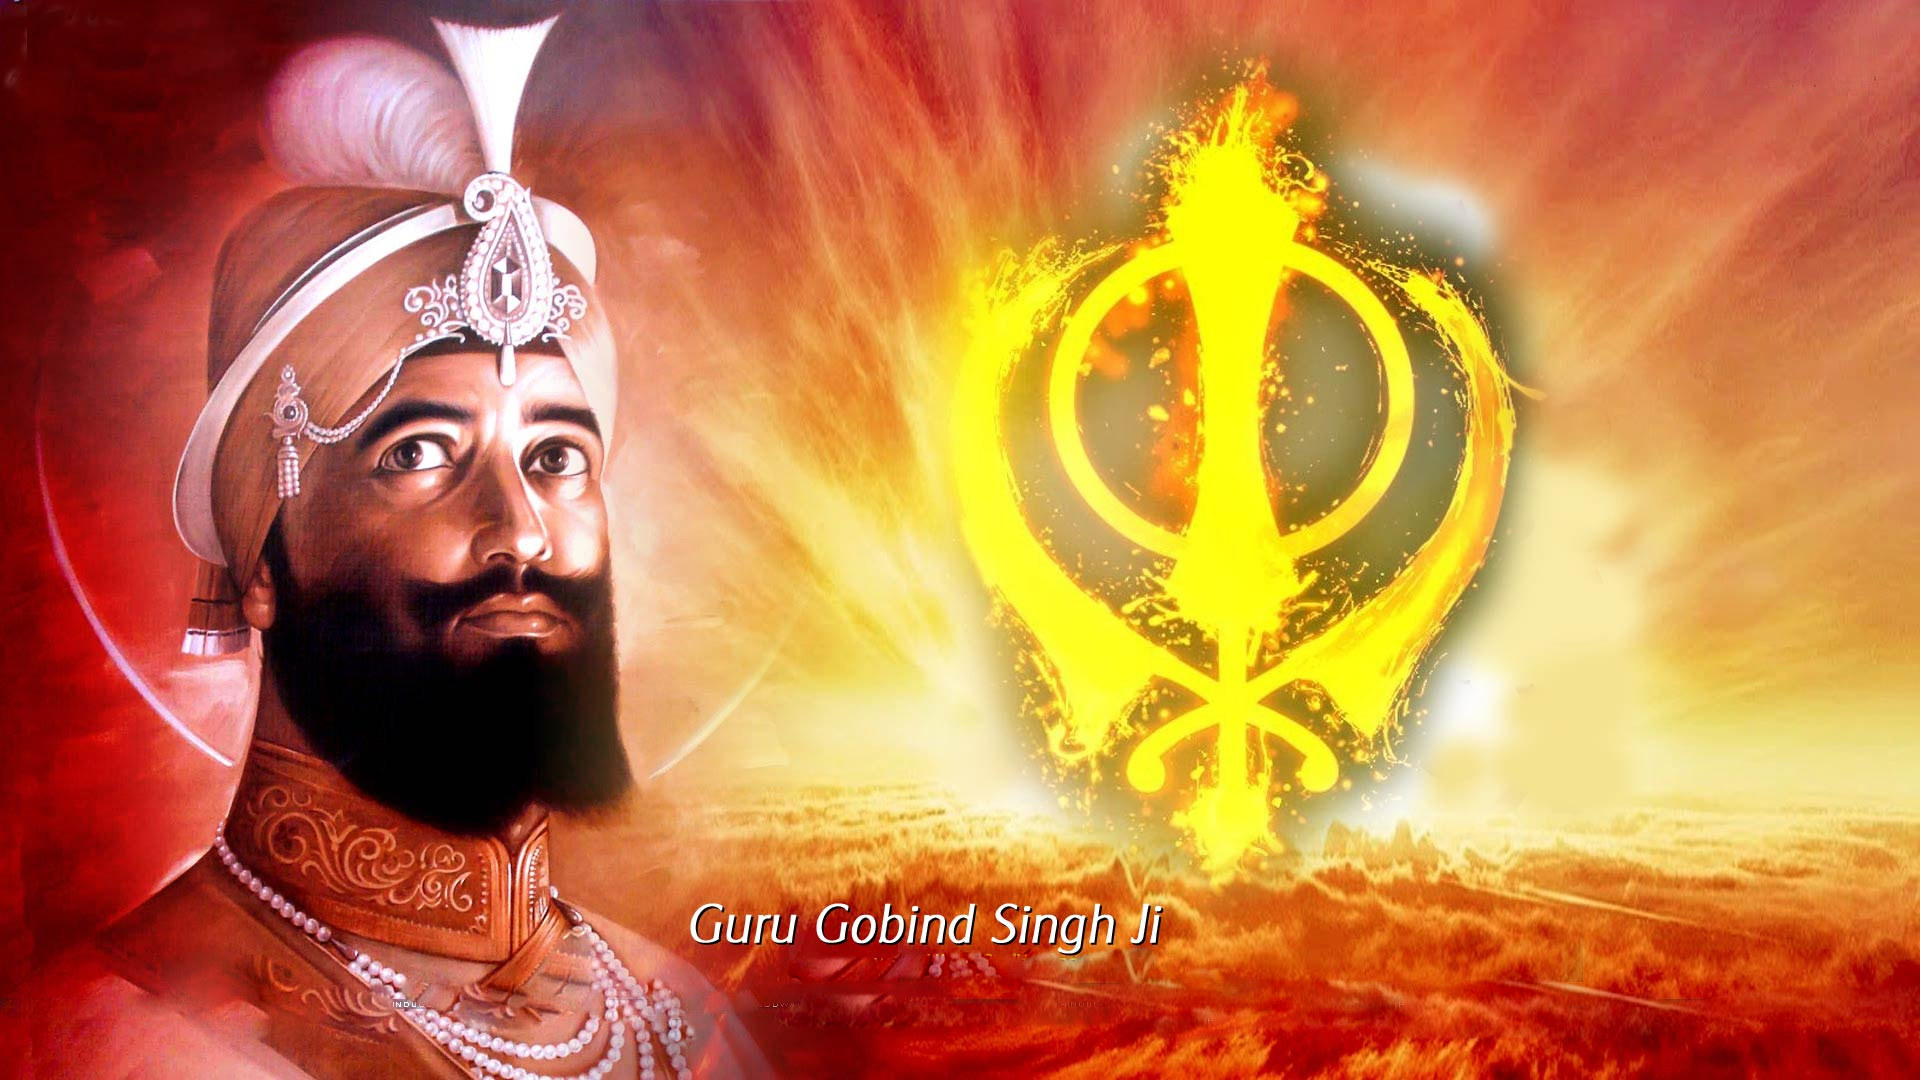 Guru Gobind Singh Ji Full Hd Wallpaper Download